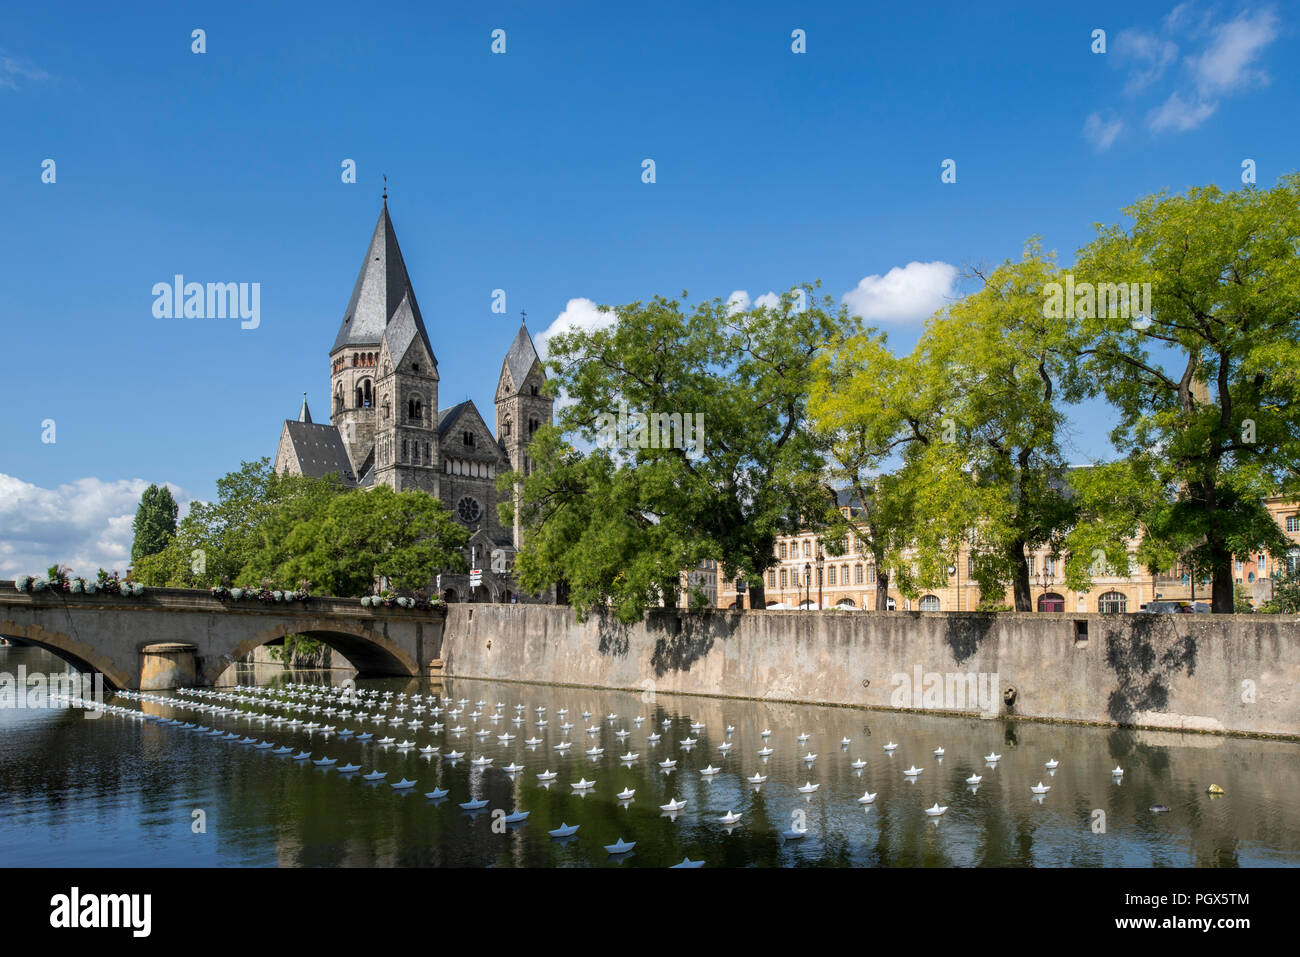 Temple neuf and modern artwork Voyage on the Moselle river during Festival Constellations in the city Metz, Moselle, Lorraine, France - Stock Image